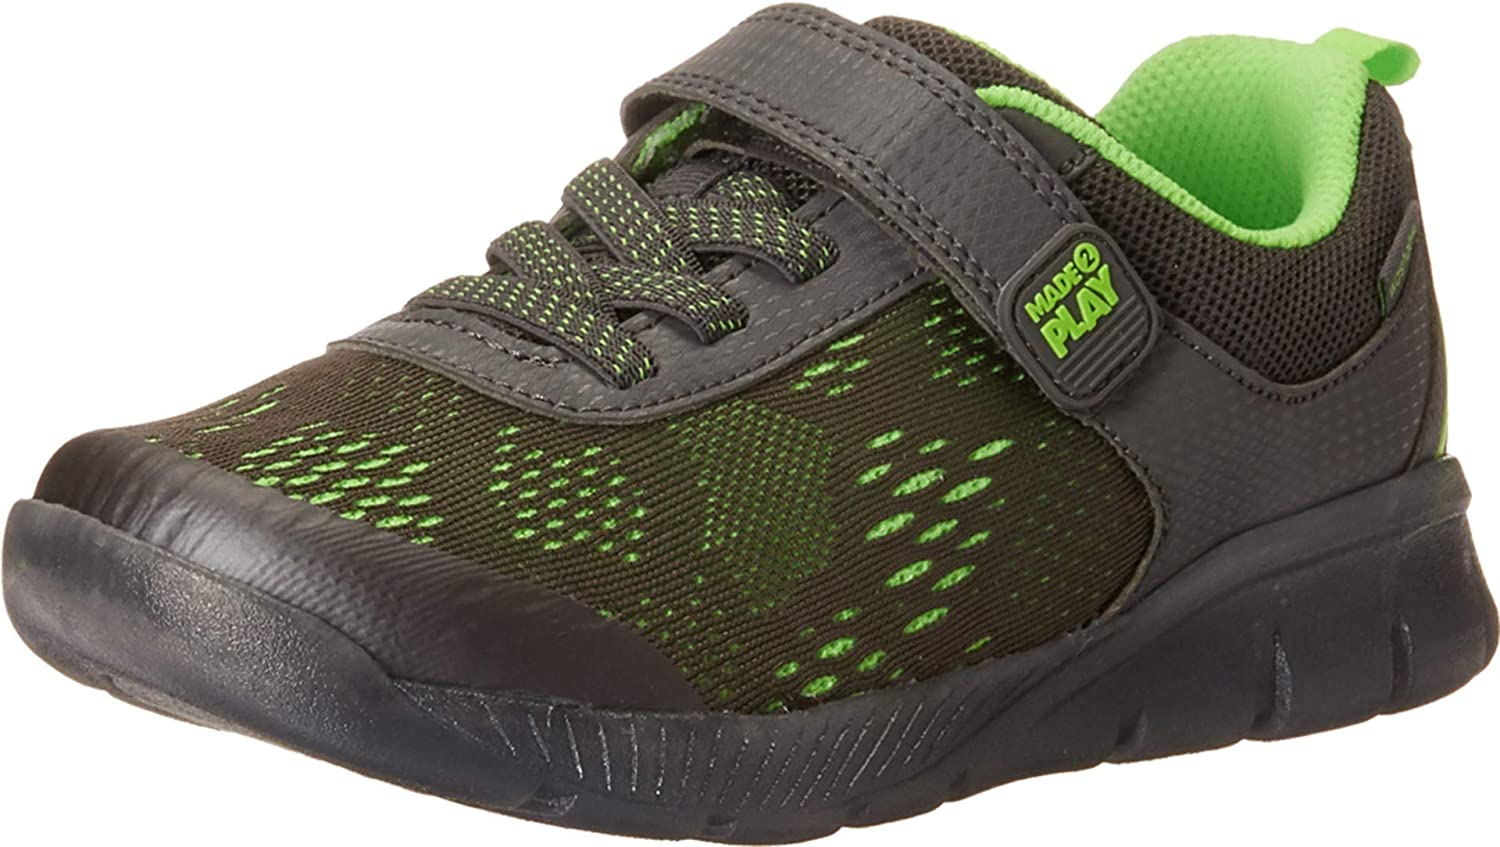 Stride Rite Kids' Made2play Lighted Neo Sneaker